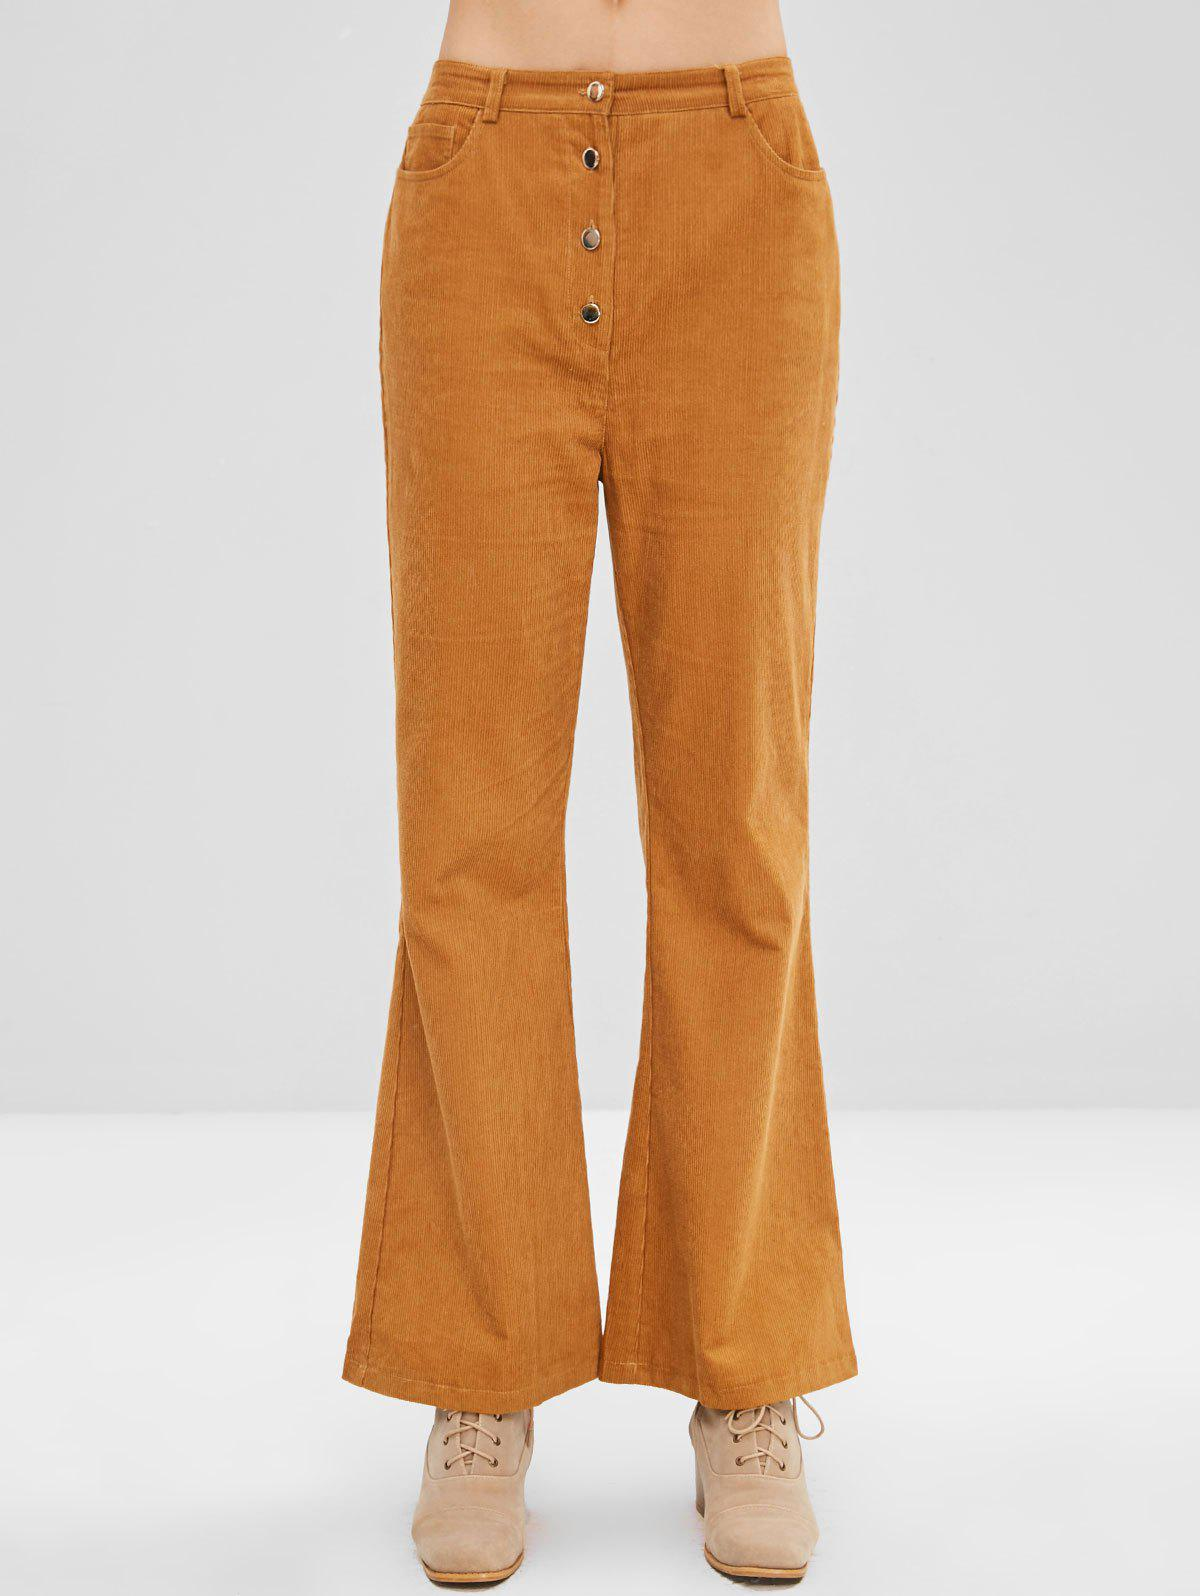 ZAFUL Button Fly Corduroy Wide Leg Pants